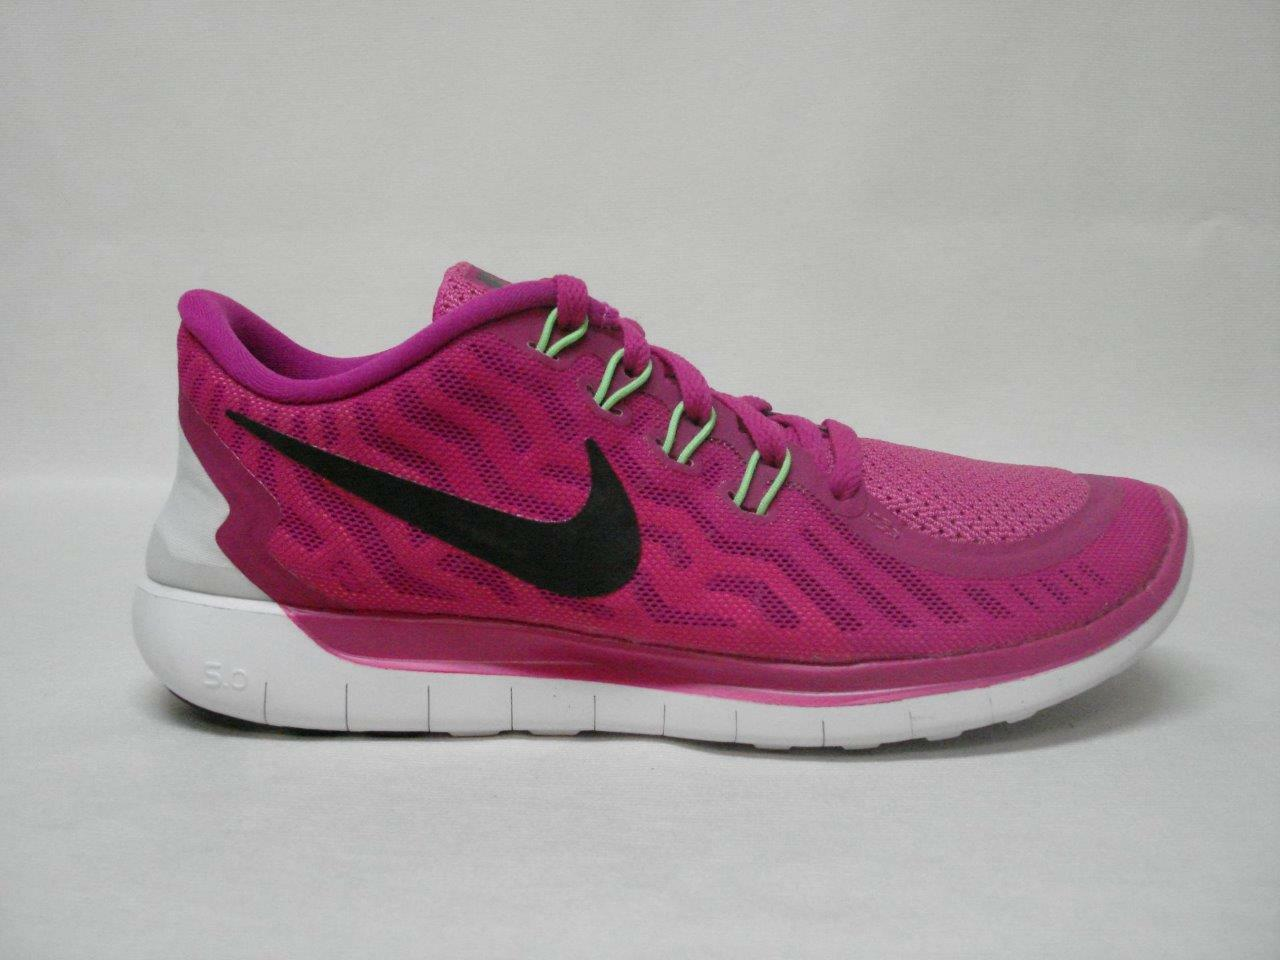 1b6c68af94e6 NIB NIB NIB NIKE FREE 5.0 WOMEN S RUNNING SHOE S 7 FUCHSIA FLASH AWESOME  SHOES 8155c2